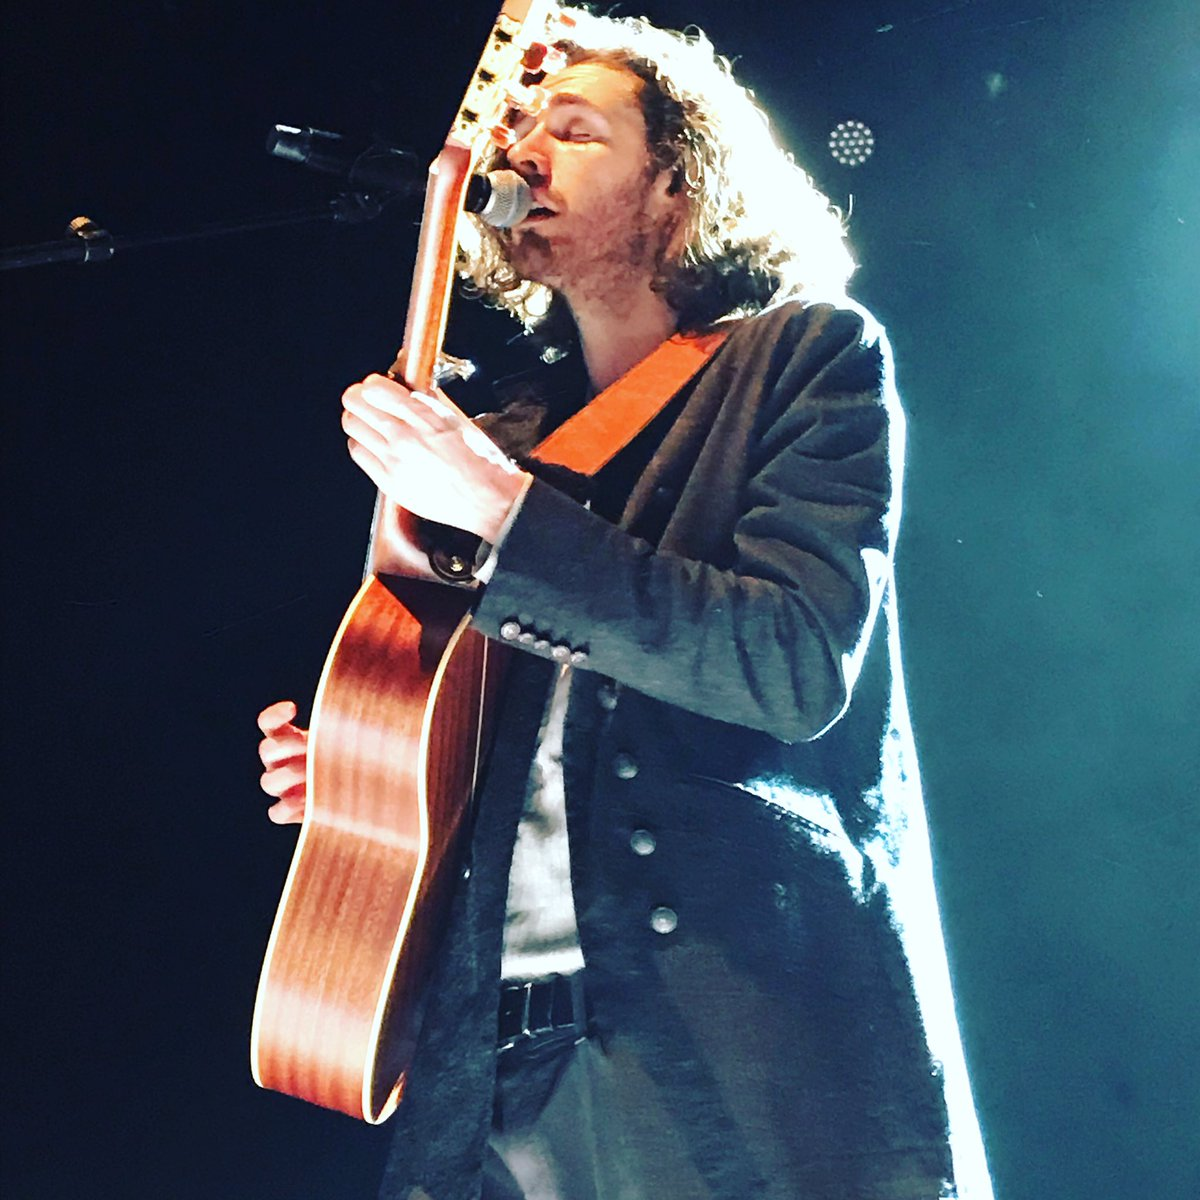 RT @martine291: Thank you @Hozier for this amazing gig in @sallepleyel in Paris. This was awesome. https://t.co/yqdTymrf7Q